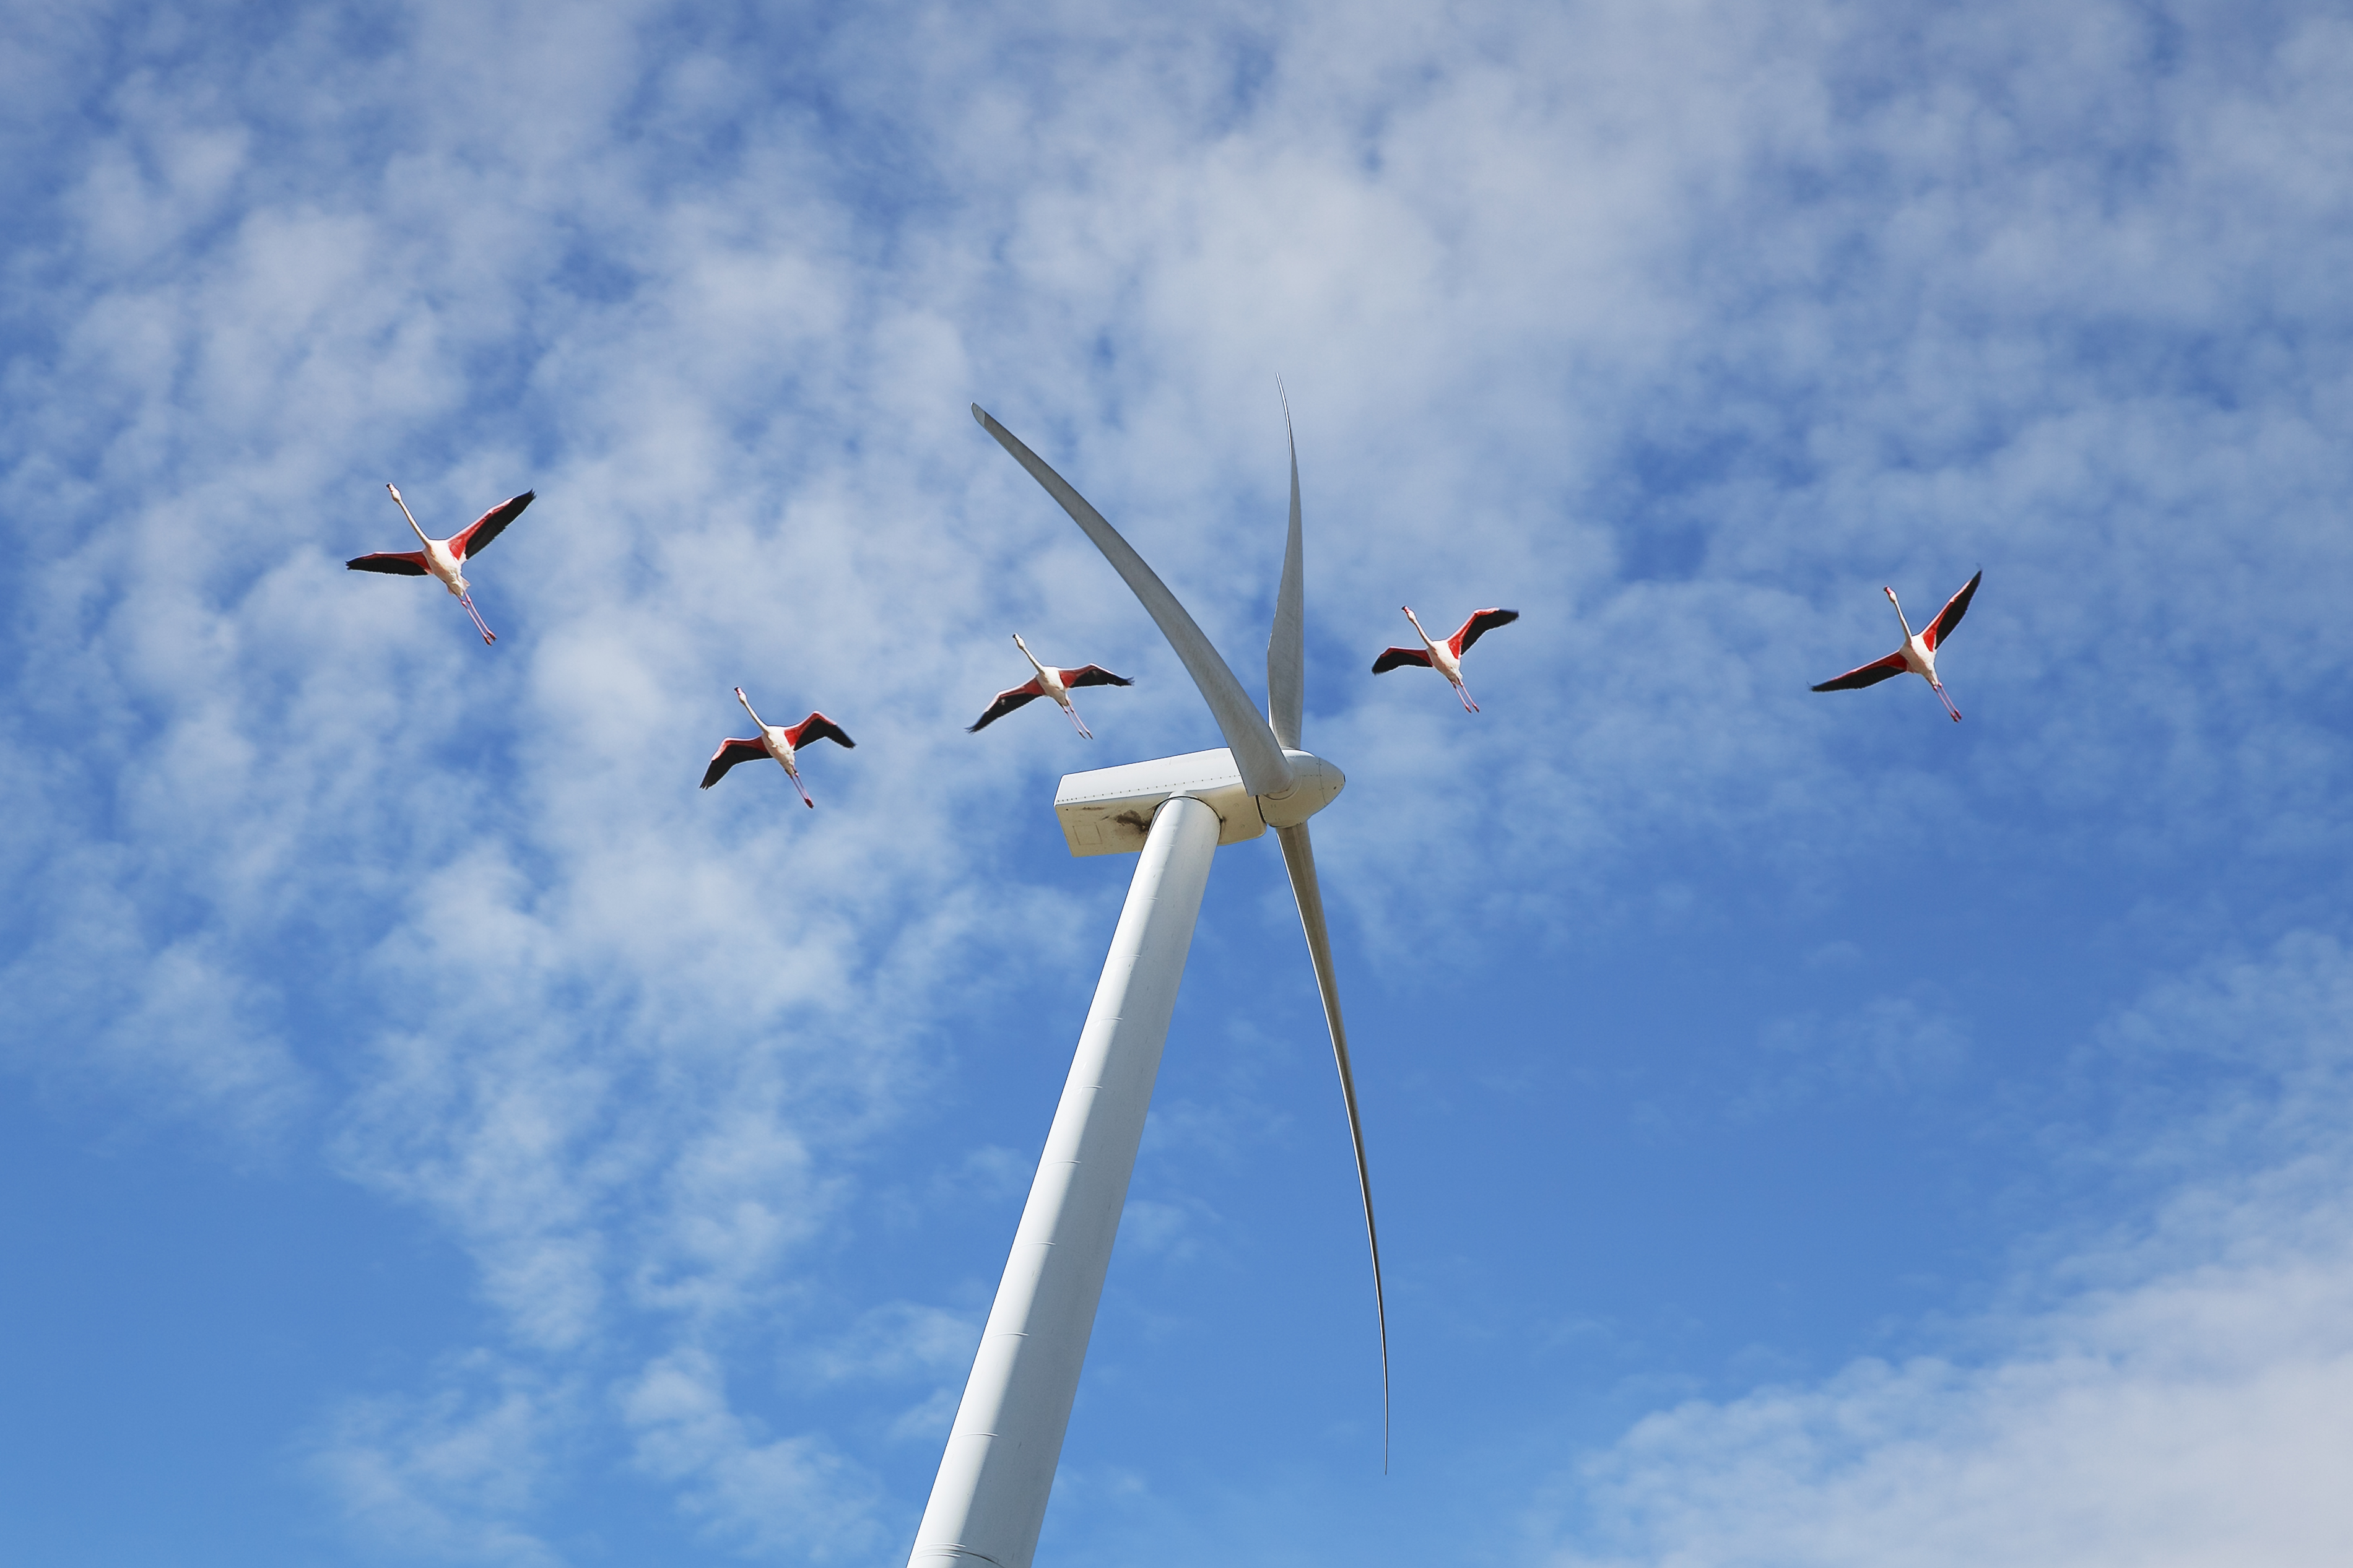 migratory birds flying over windmill blades